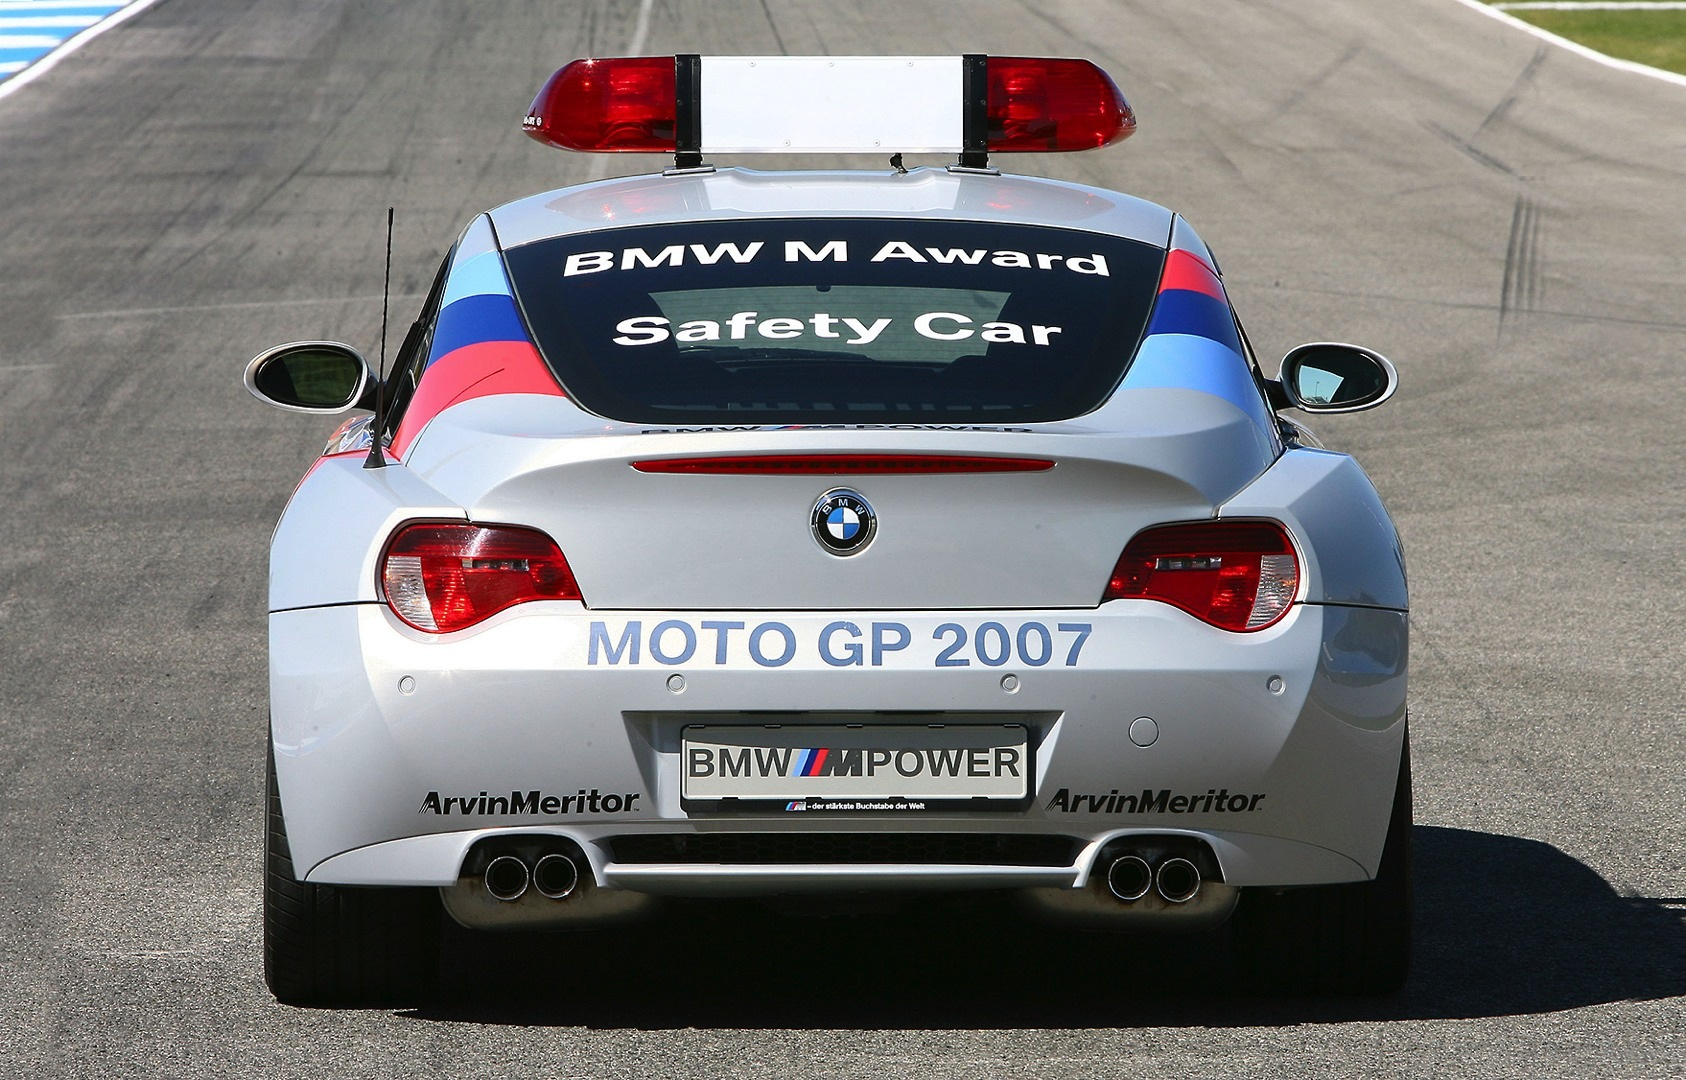 Bmw M4 Coupe Motogp Safety Car Details Revealed Autoevolution